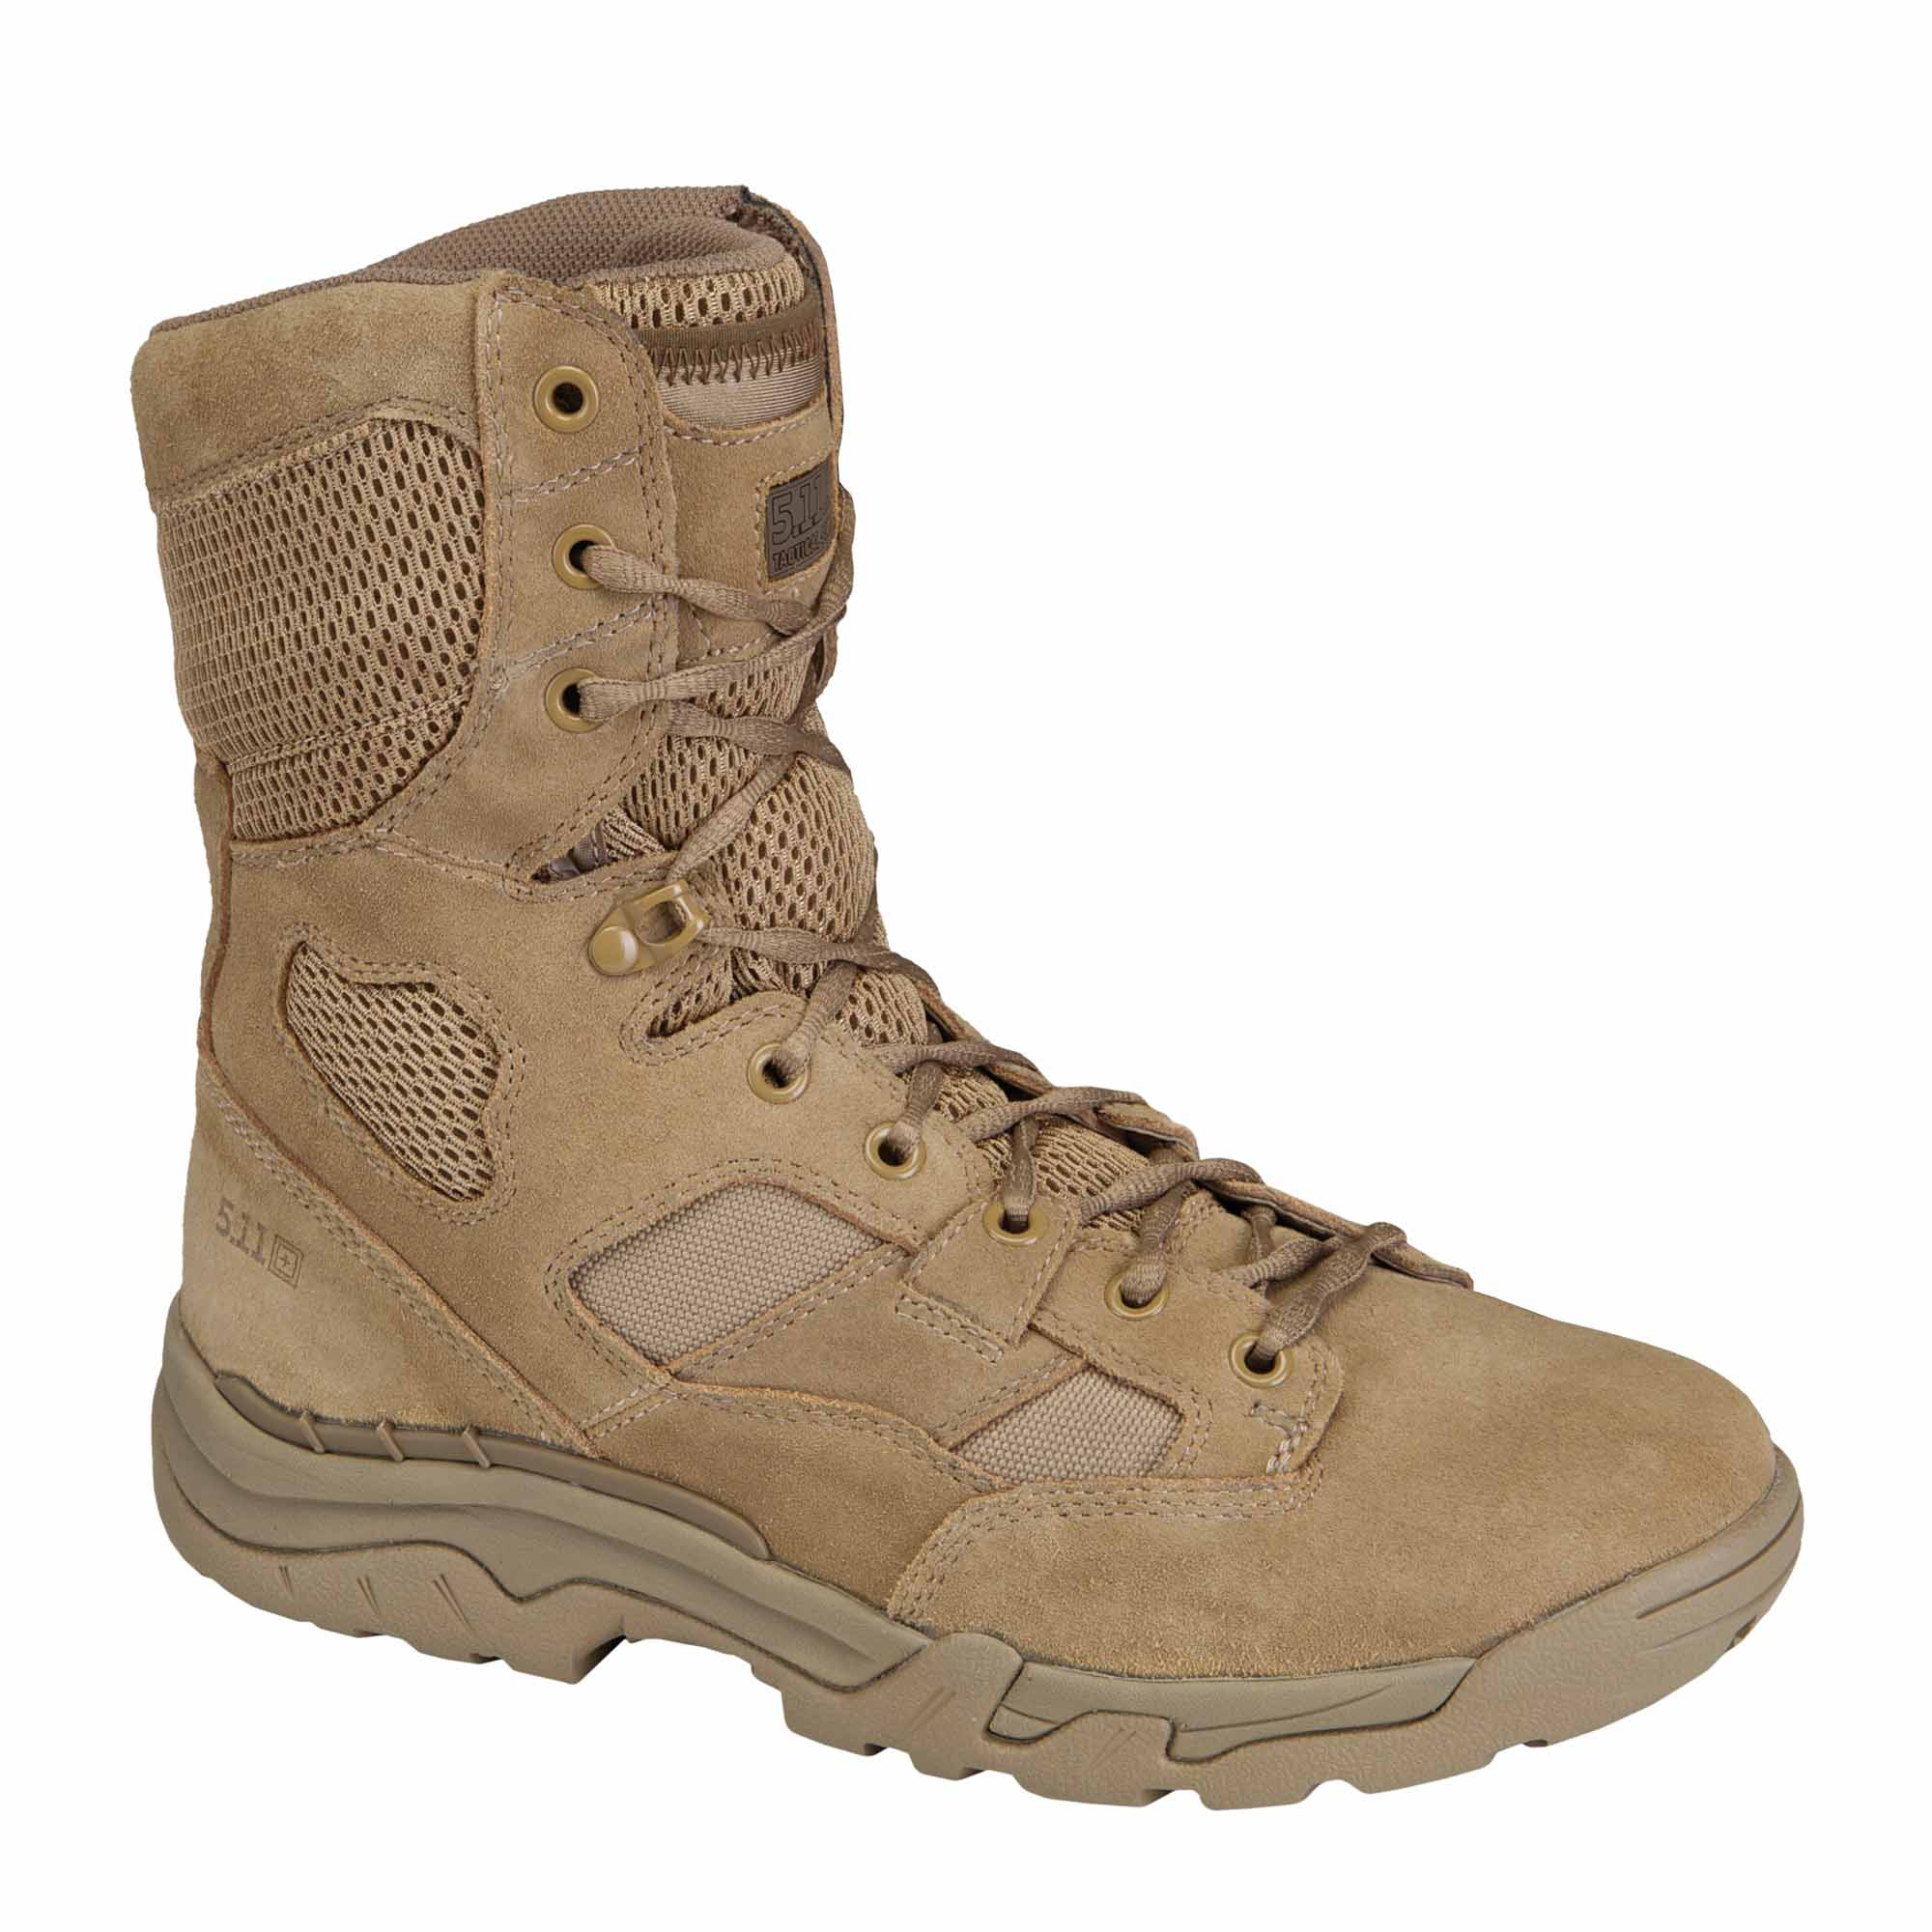 Mens 5.11 Taclite 8 Coyote Boot From 5.11 Tactical-5.11 Tactical